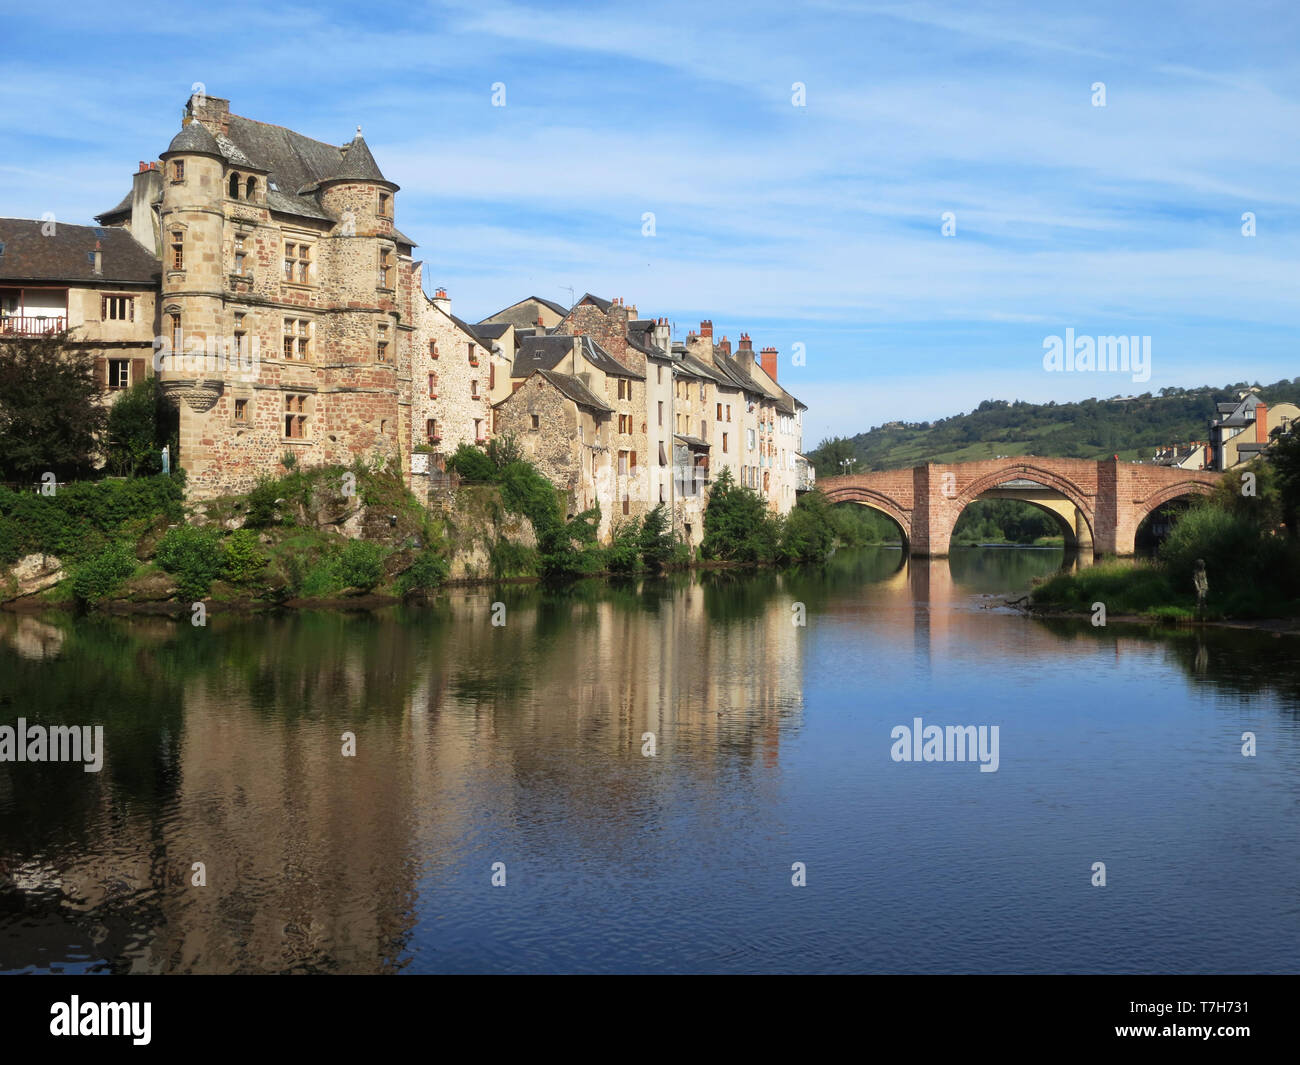 Town of Estaing along the GR 65, Via Podiensis, also know as Le Puy Route, in southern France. French part of the Camino de Santiago. - Stock Image